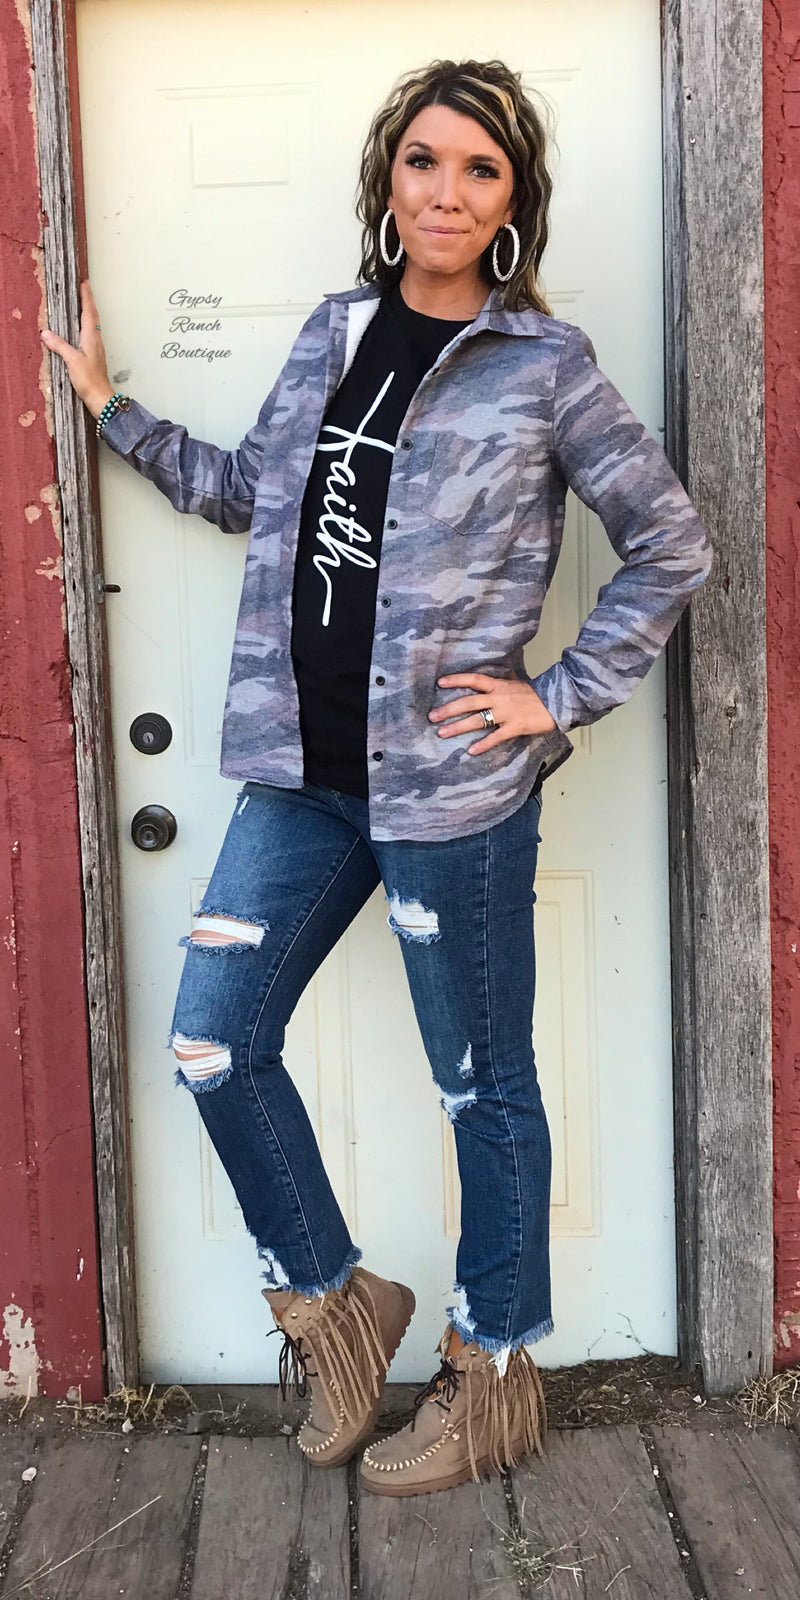 Clamity Camo Button Up Top Fleece Lined - Also in Plus Size